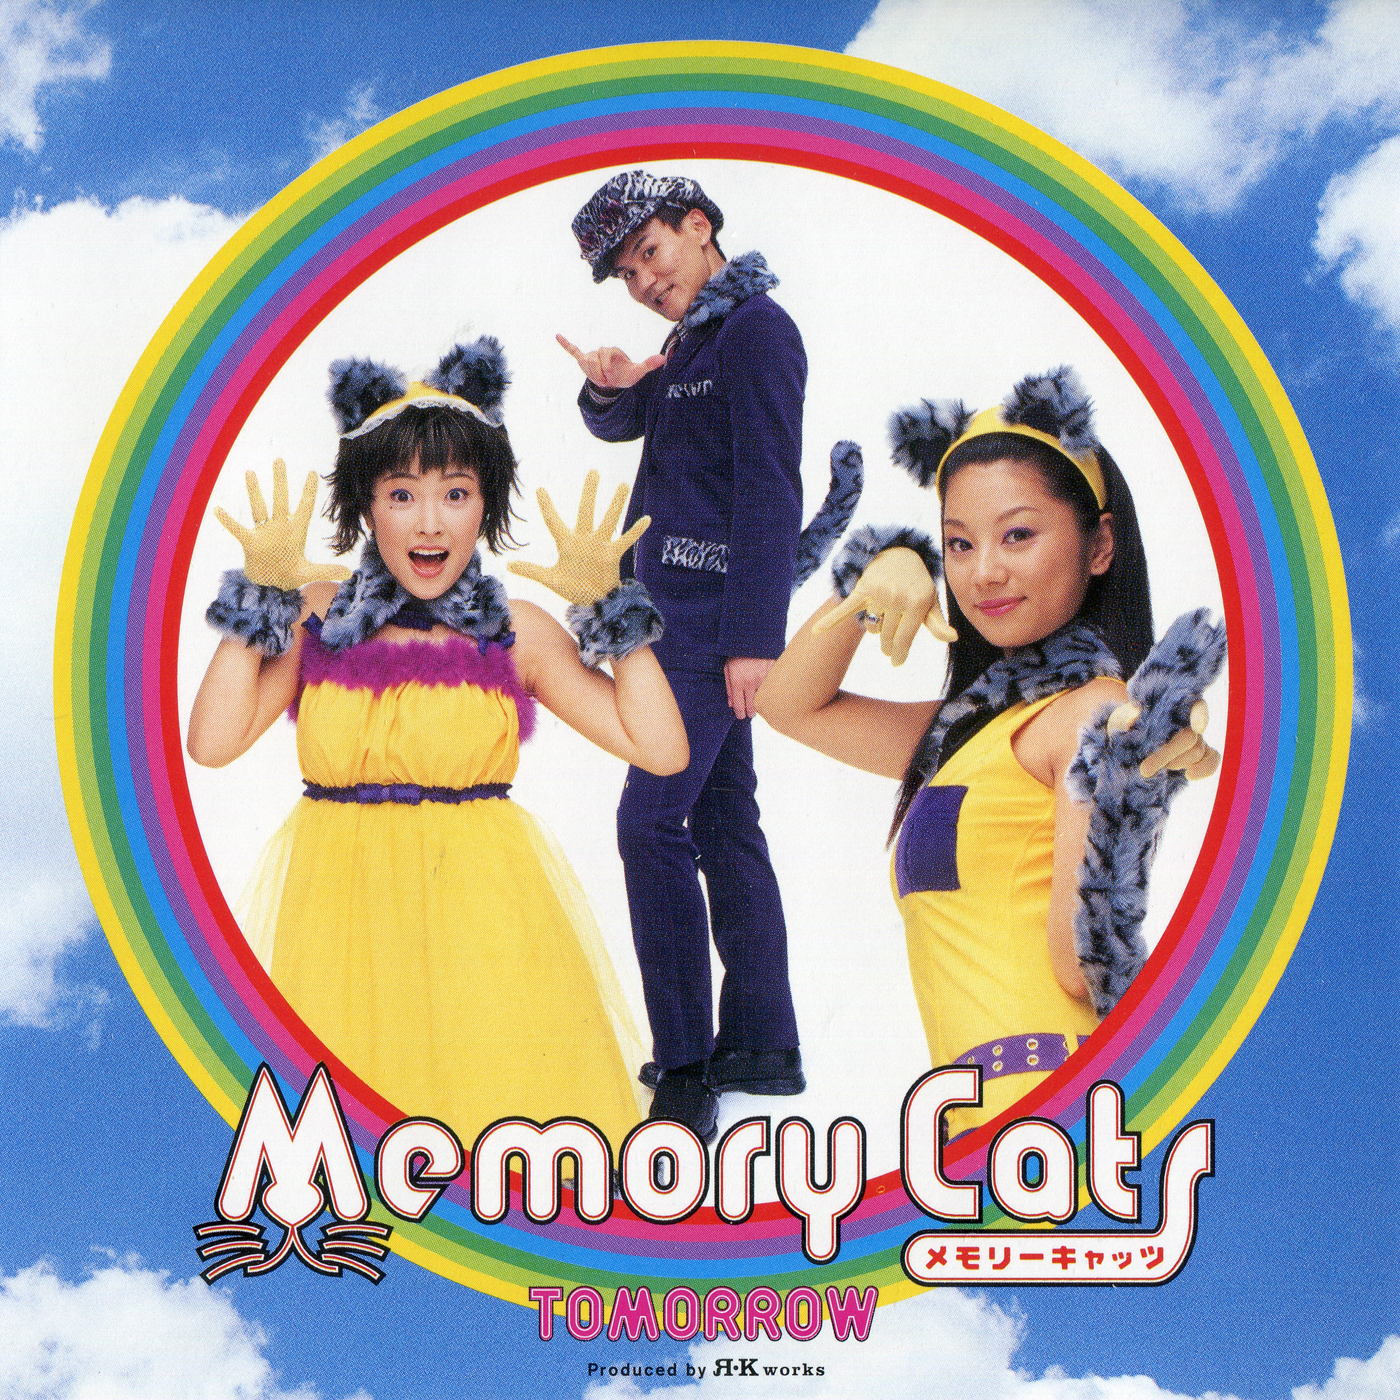 20180910.1009.07 Memory Cat - Tomorrow (2001) (FLAC) cover.jpg